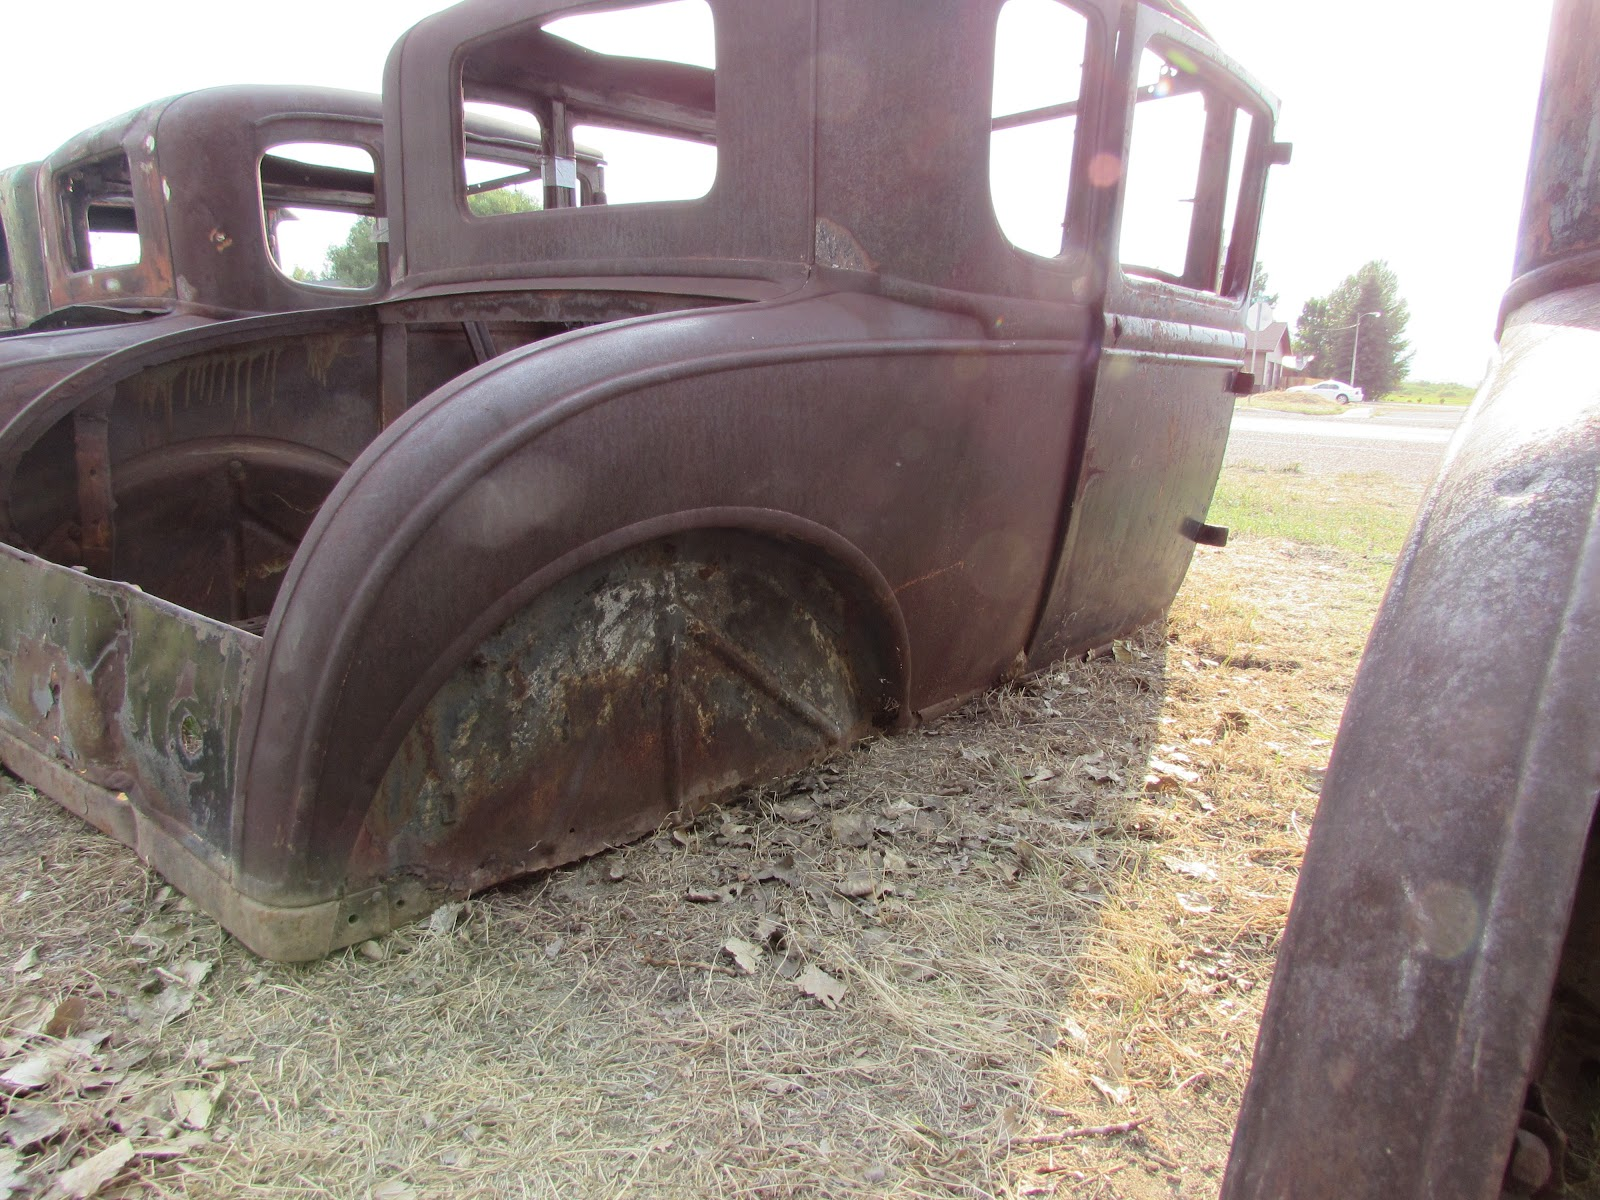 For sale 1930 31 ford coupe body this is a very straight car it does have some minor lower rust in the doors and rear quarters the sub rails are very